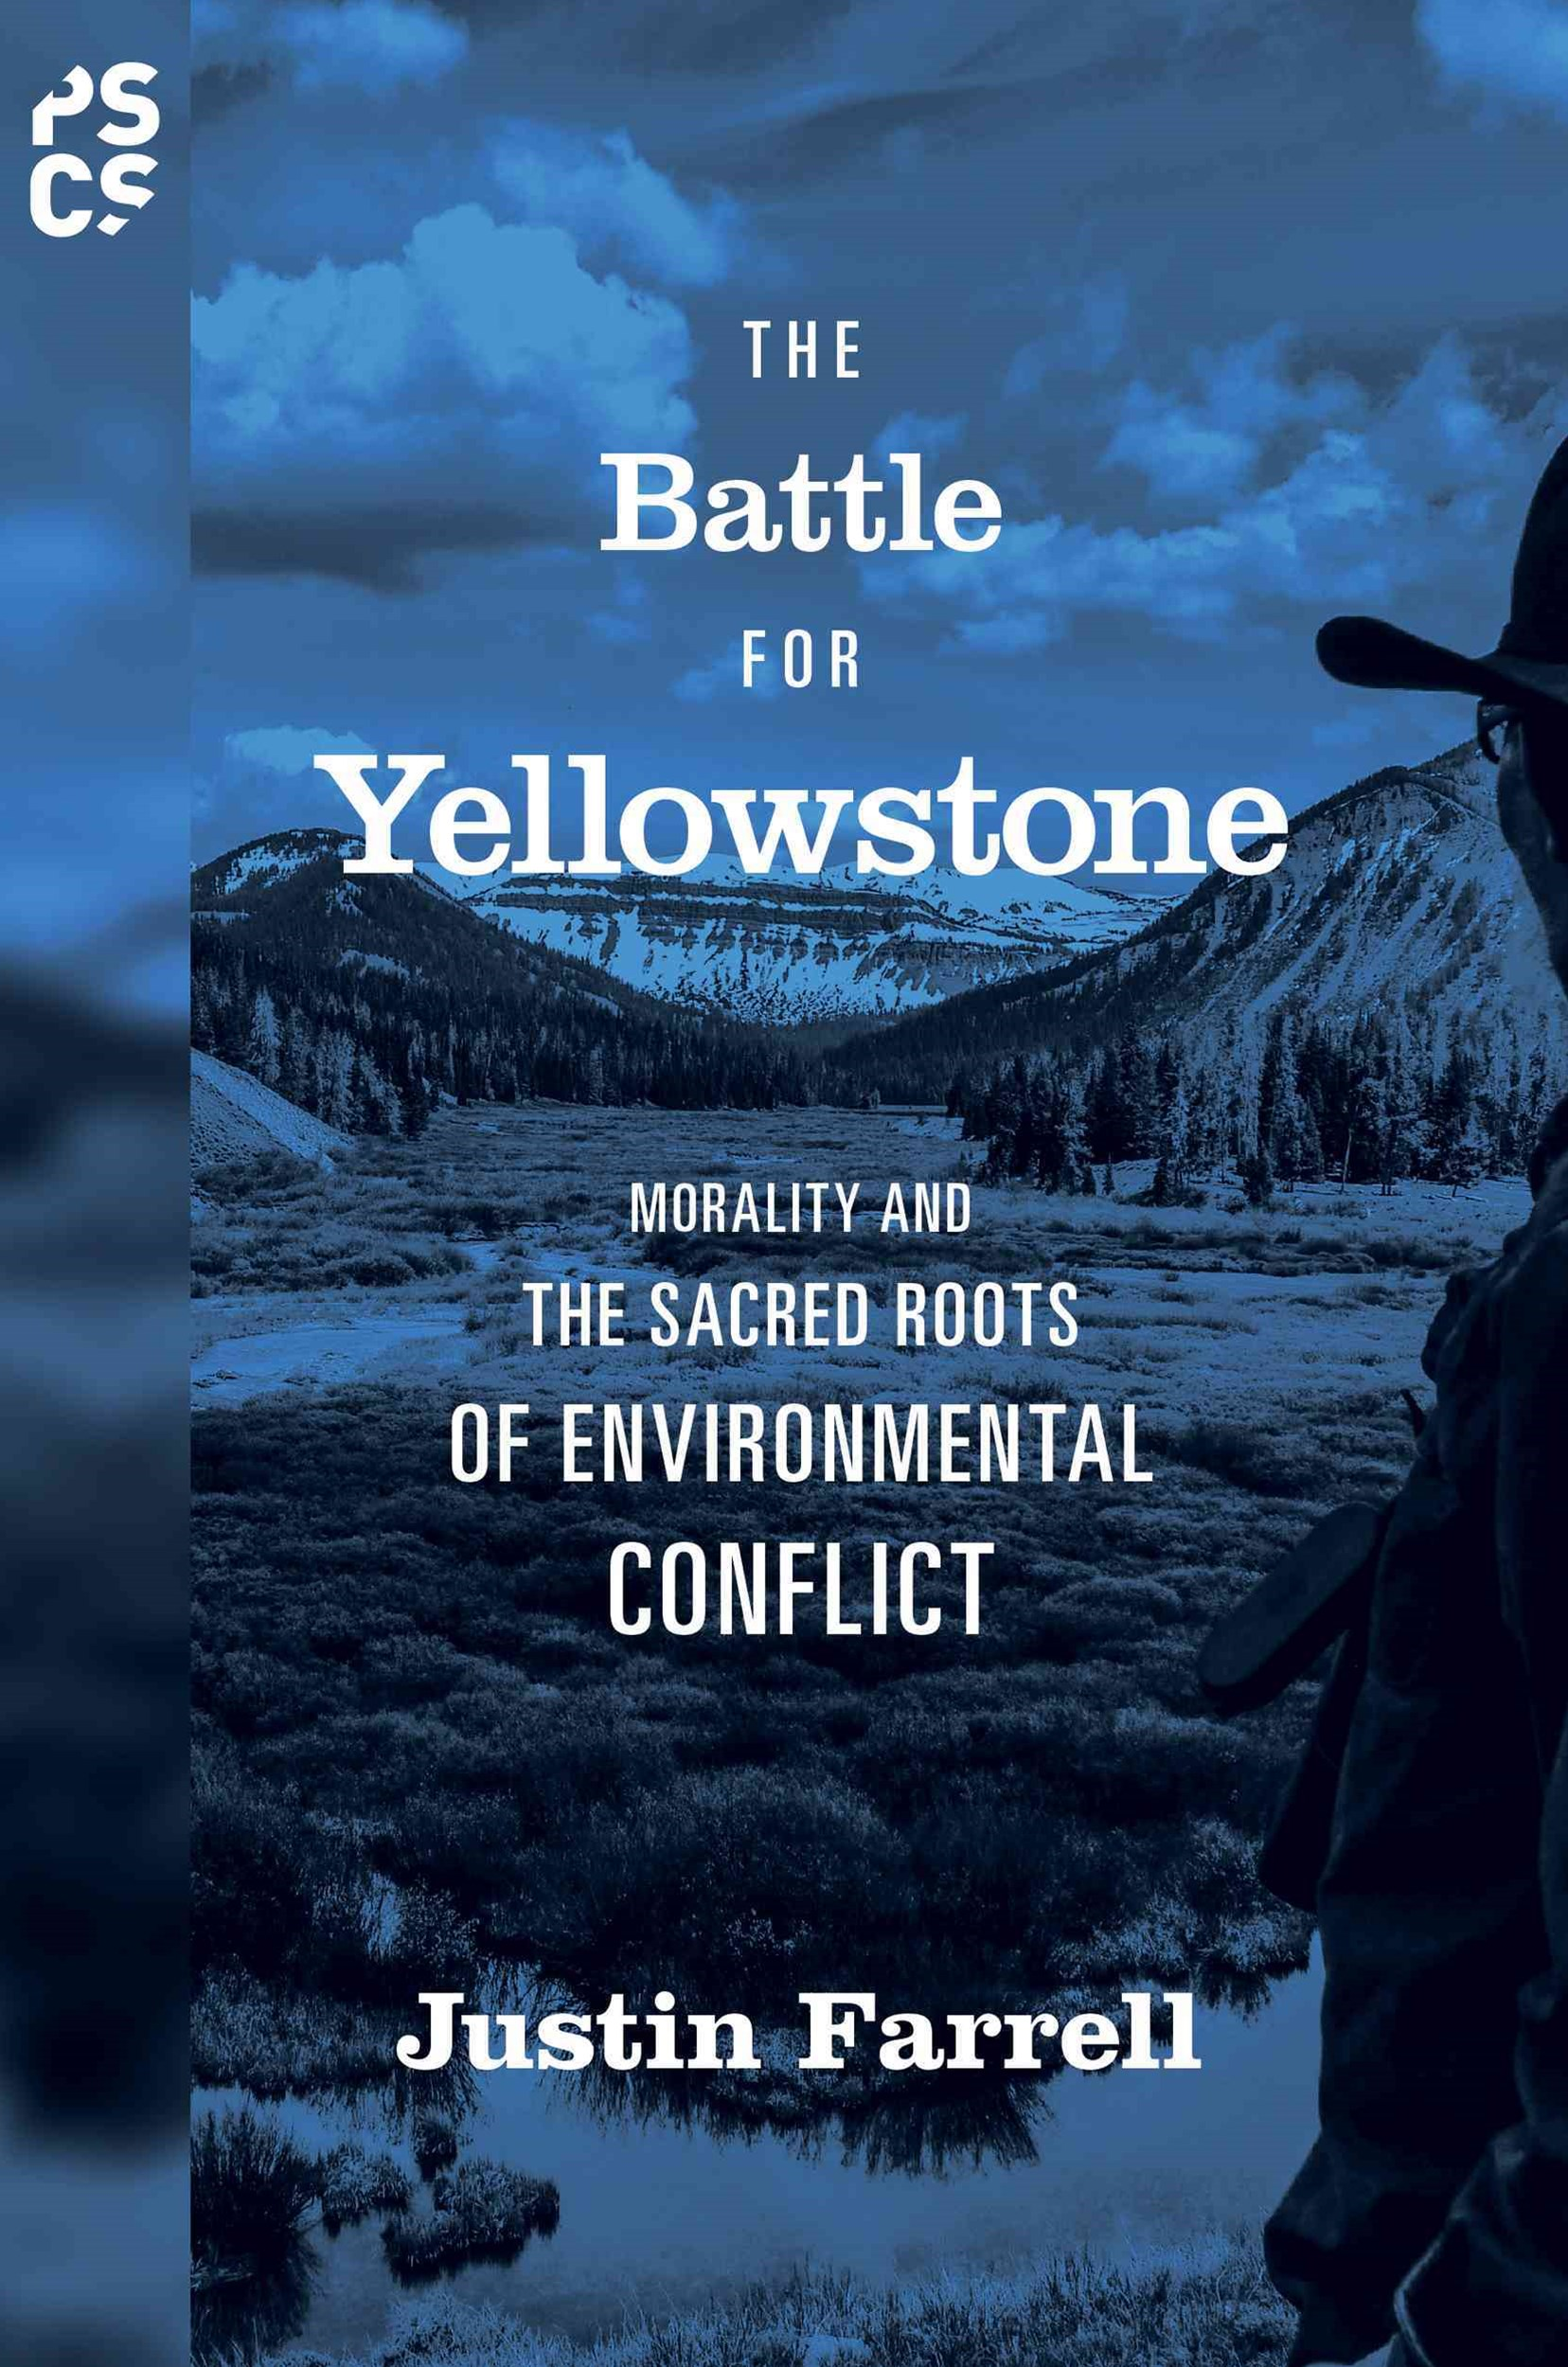 The Battle for Yellowstone